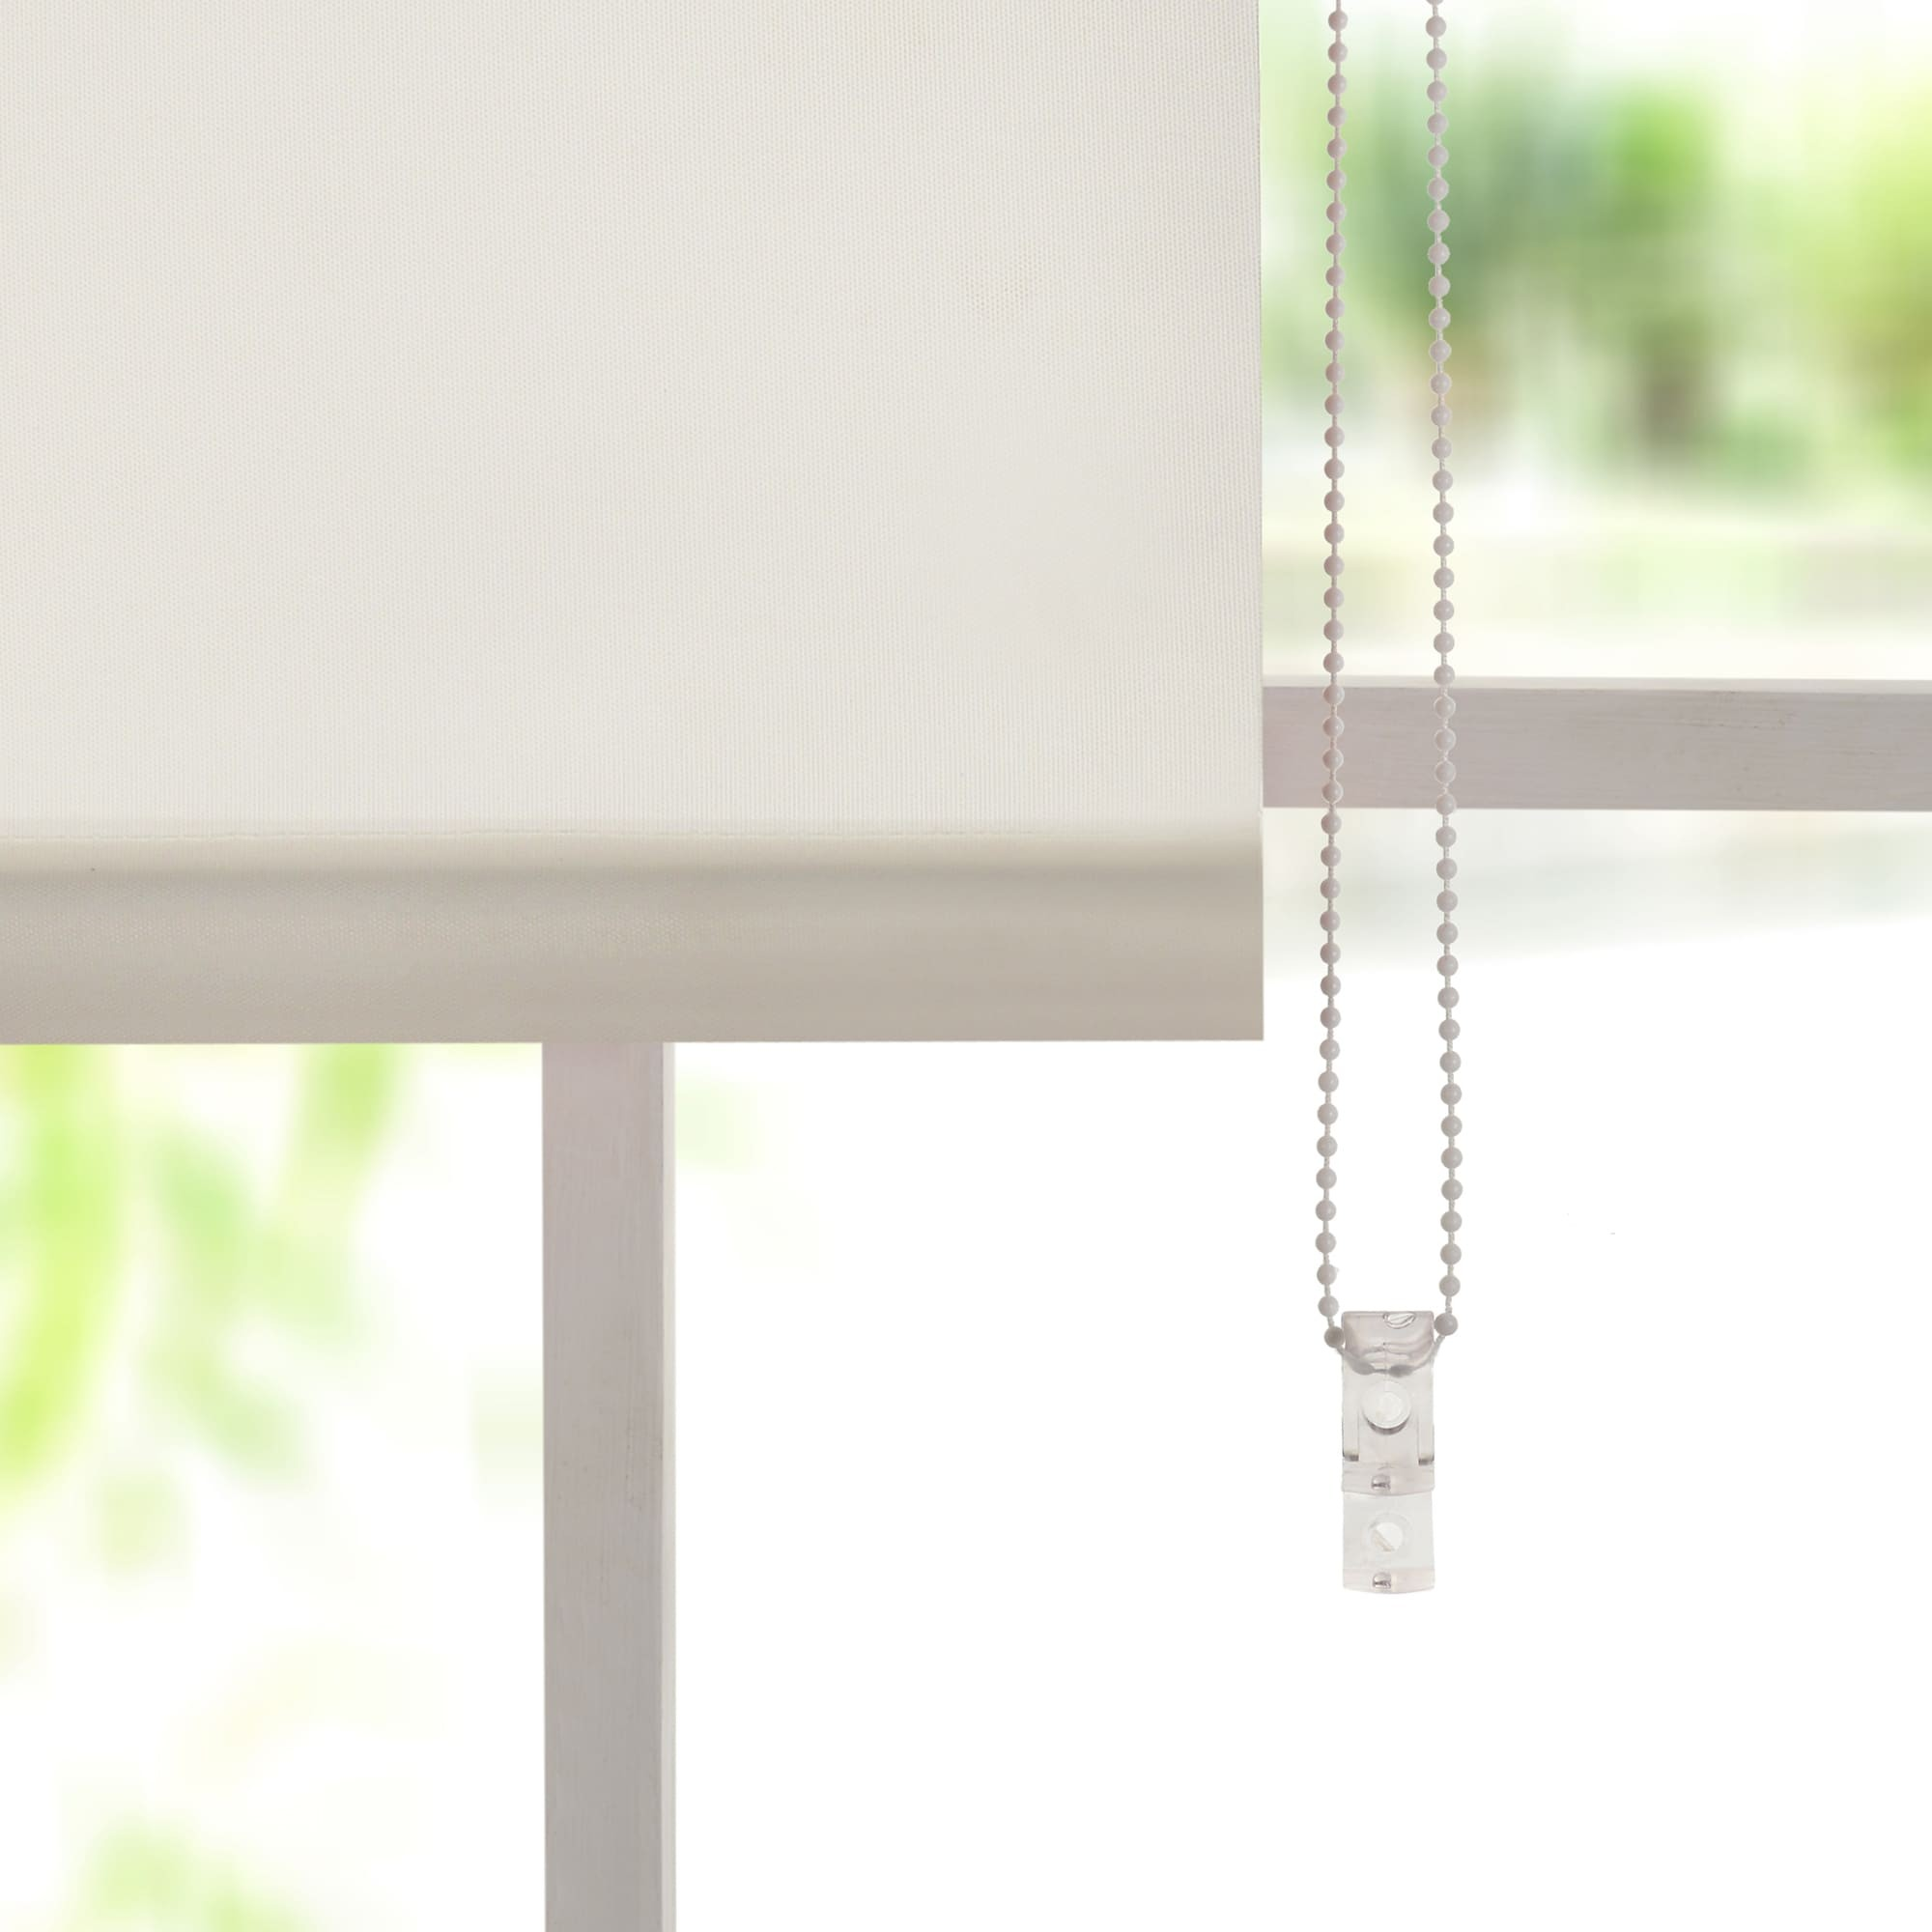 Roller Blinds Living Room Blinds Window Shades Snow